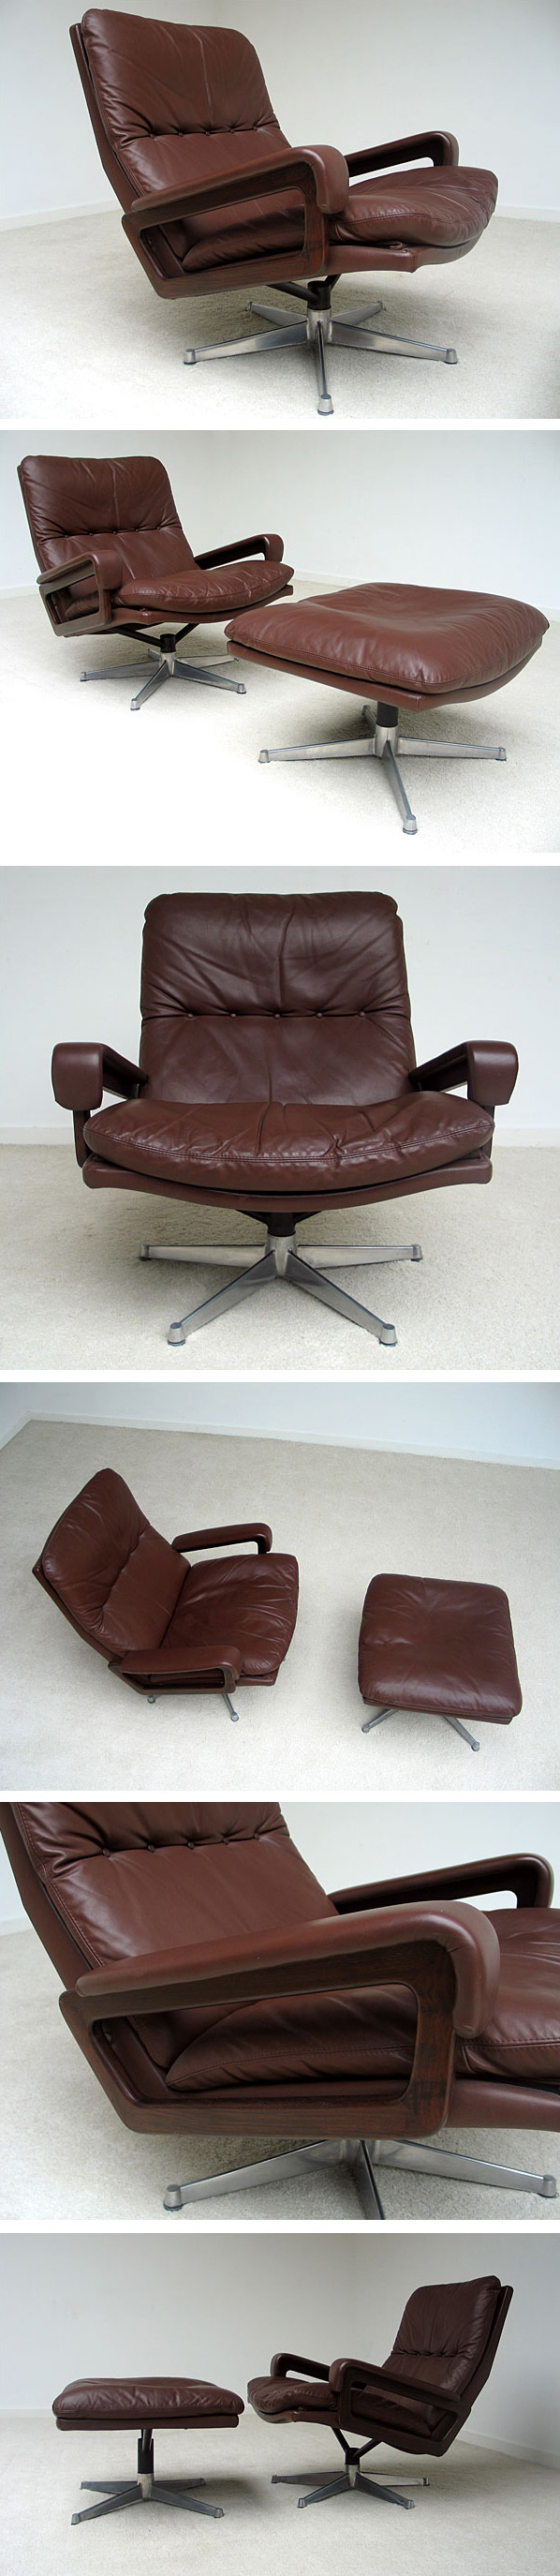 Andre Vandenbeuck Lounge King Chair and Ottoman Large